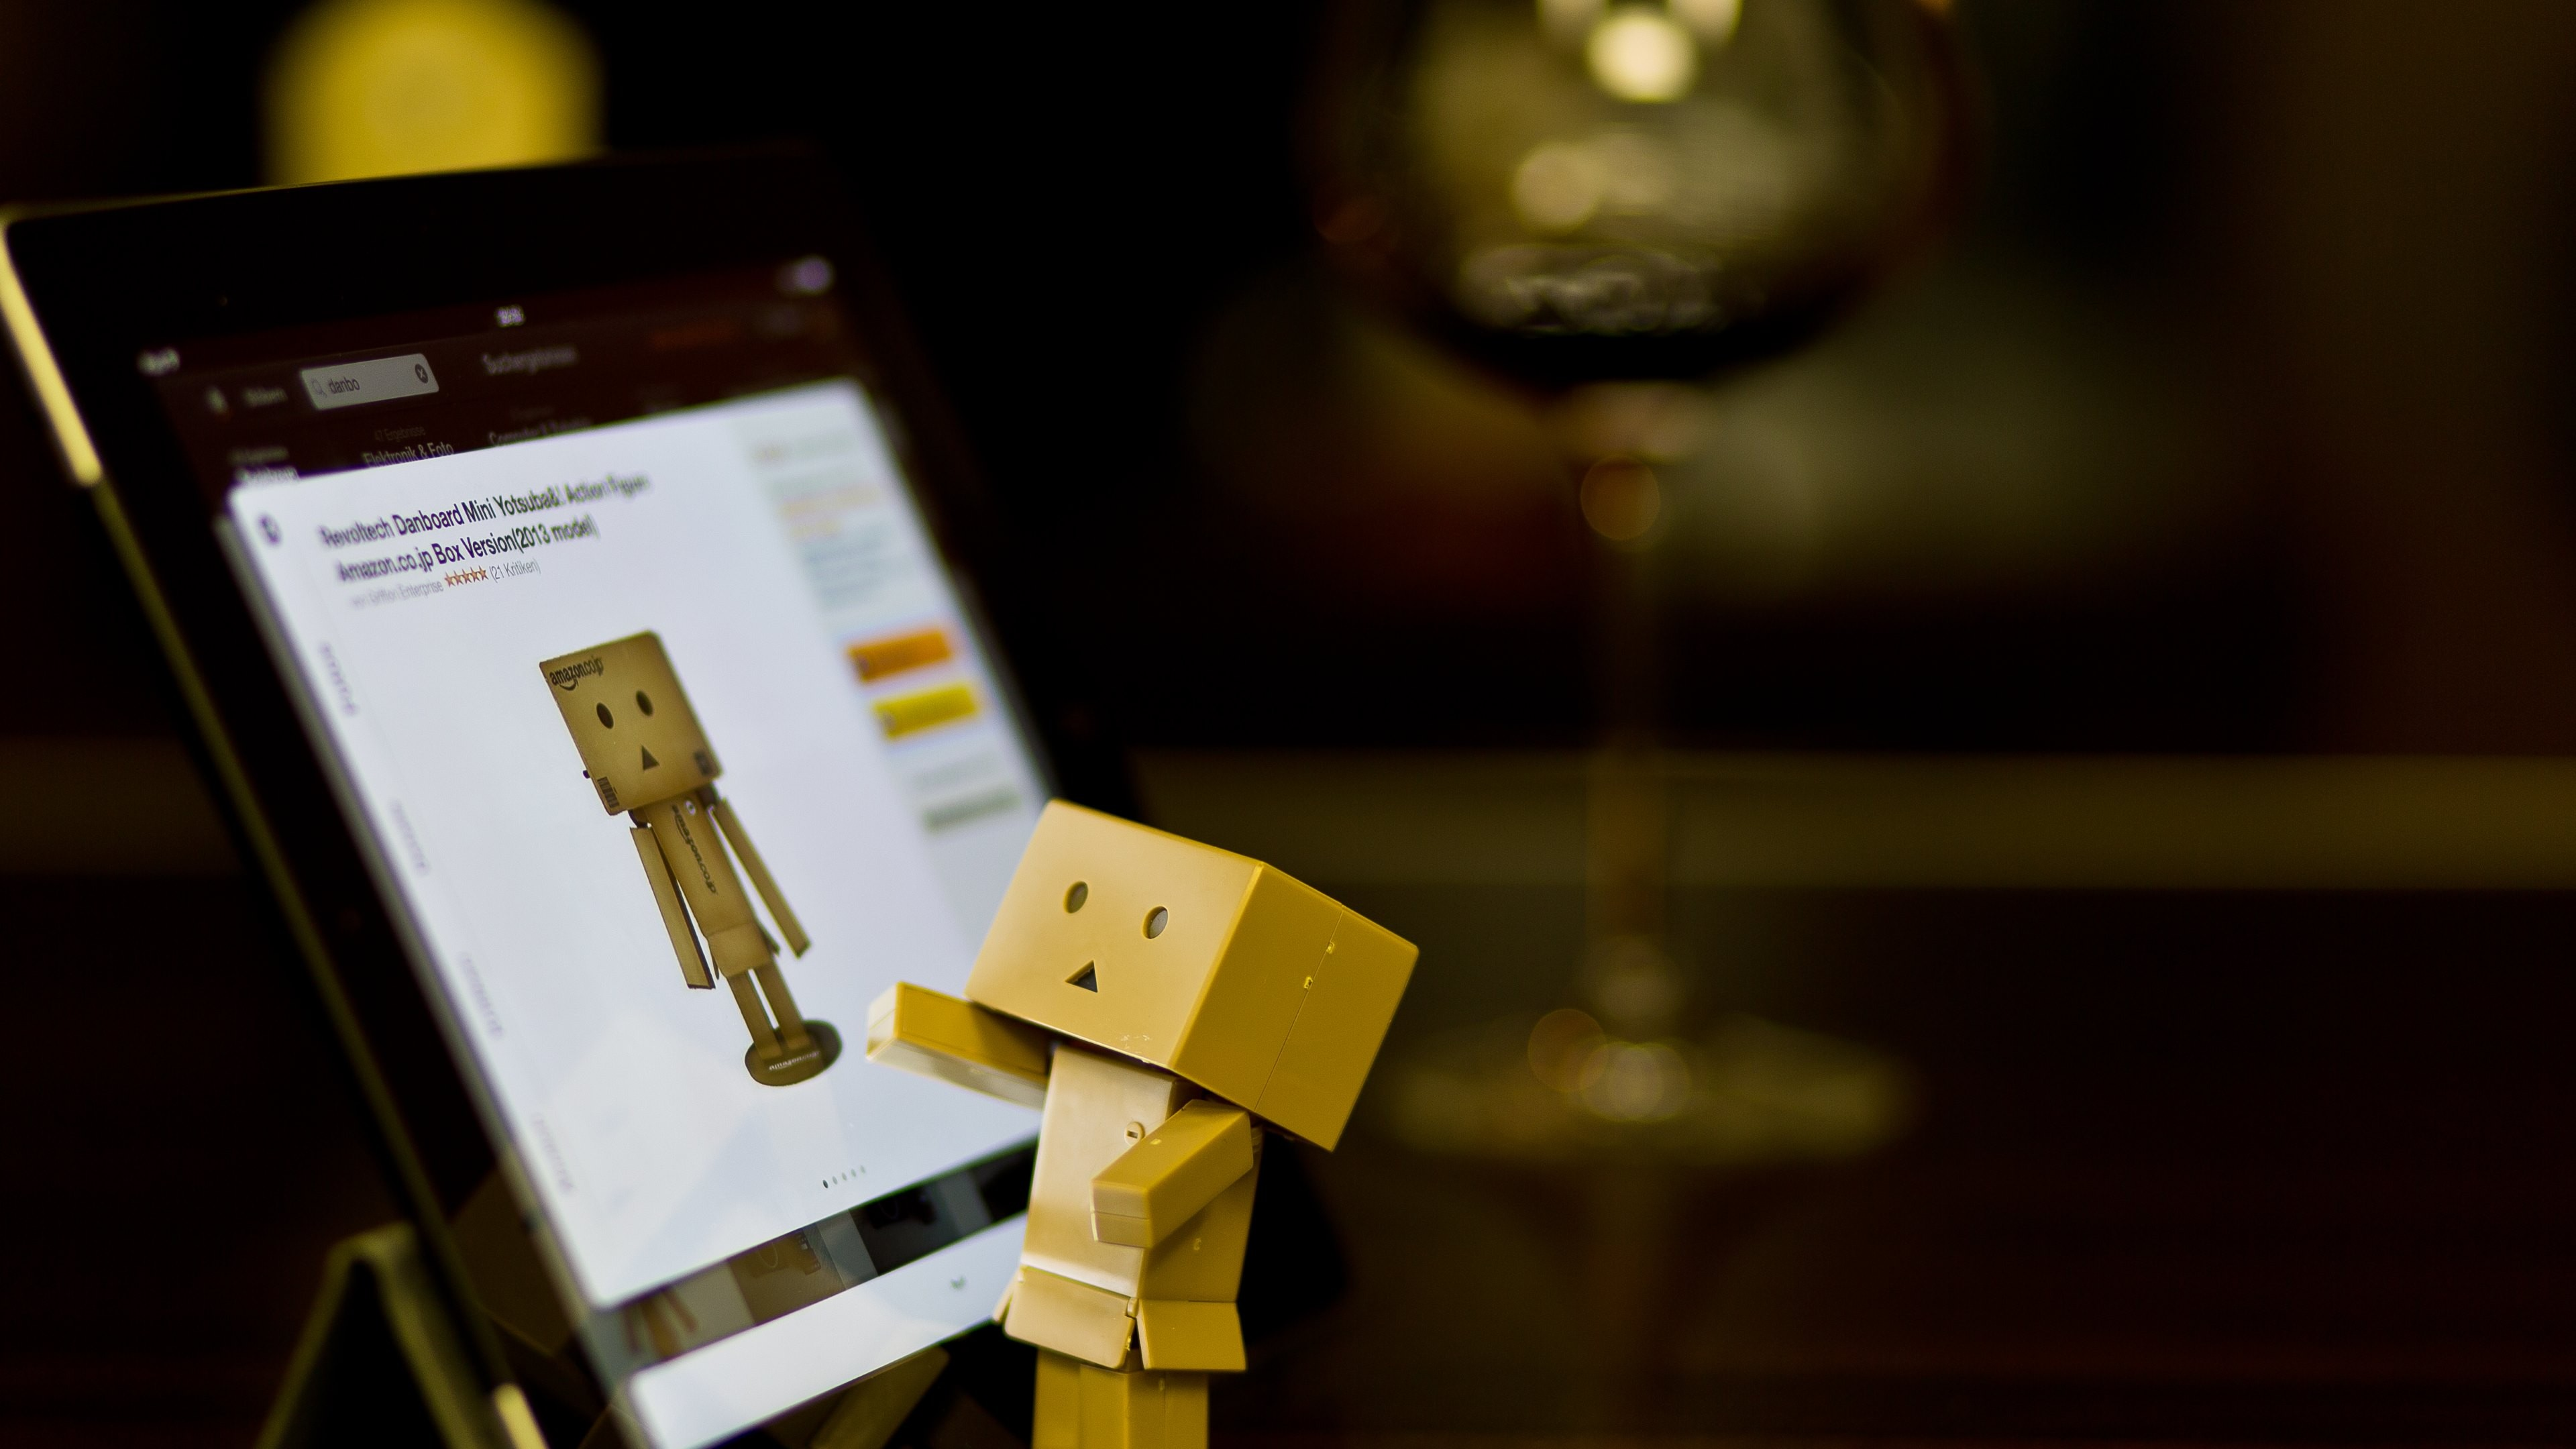 Danbo amazon hd cute 4k wallpapers images backgrounds for Amazon wallpaper